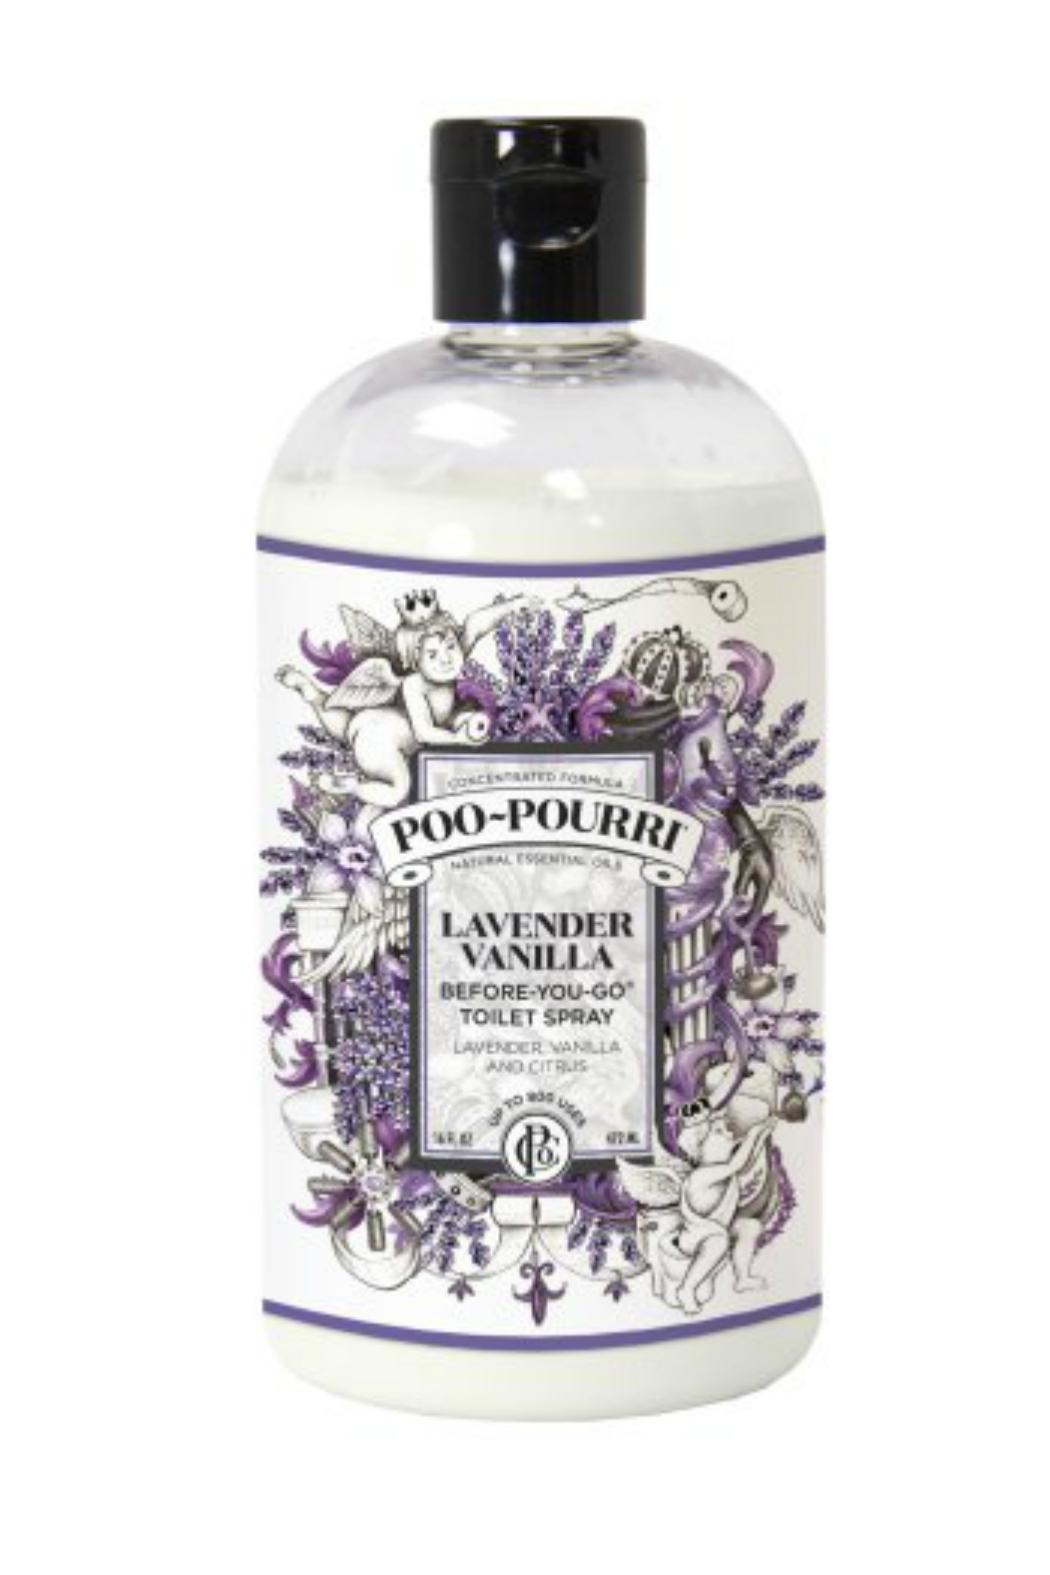 Poo-Pourri Toilet Spray Air Freshner - Main Image